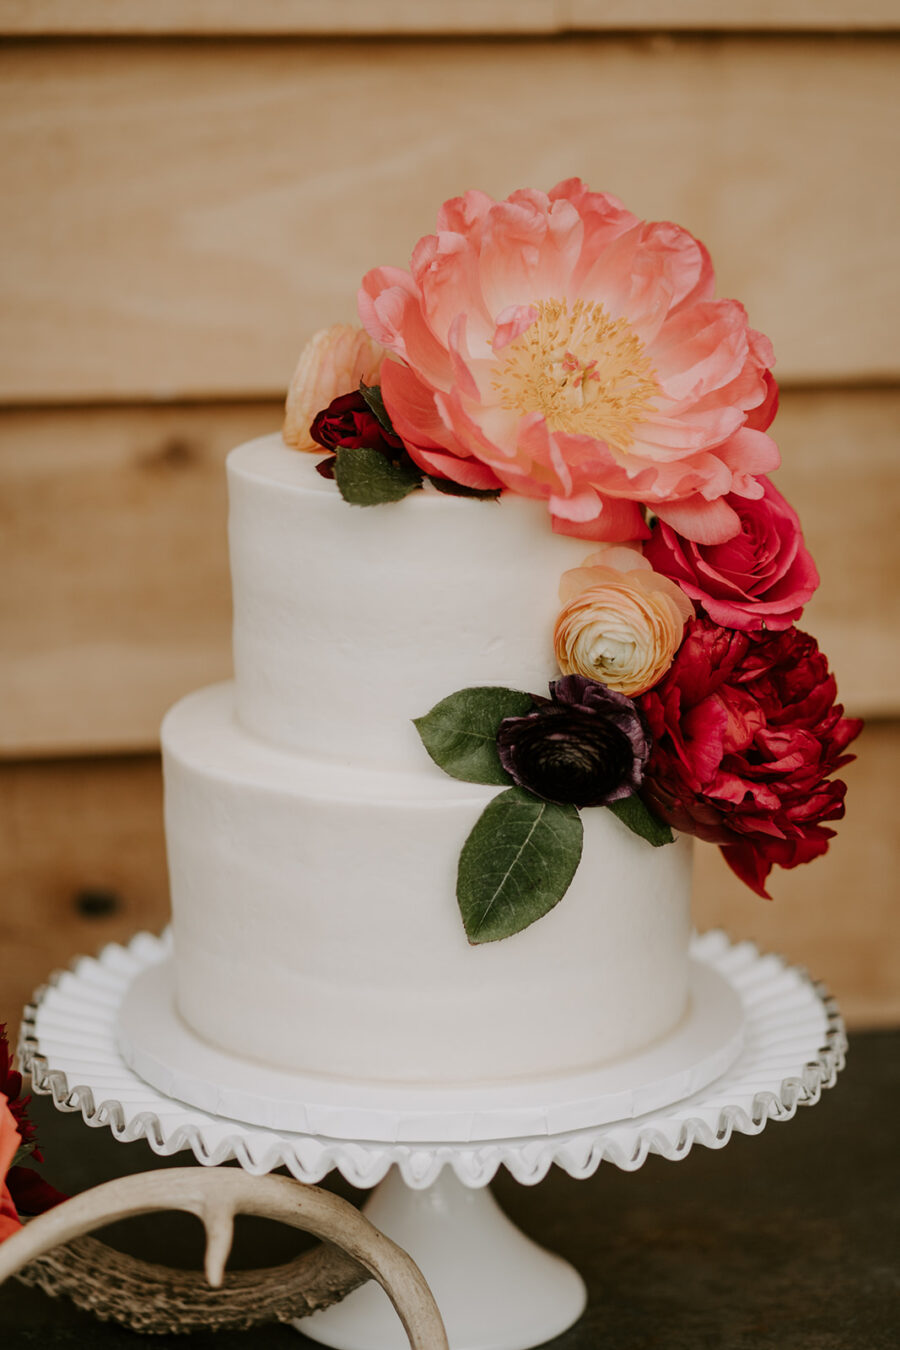 White wedding cake with pink and red flowers